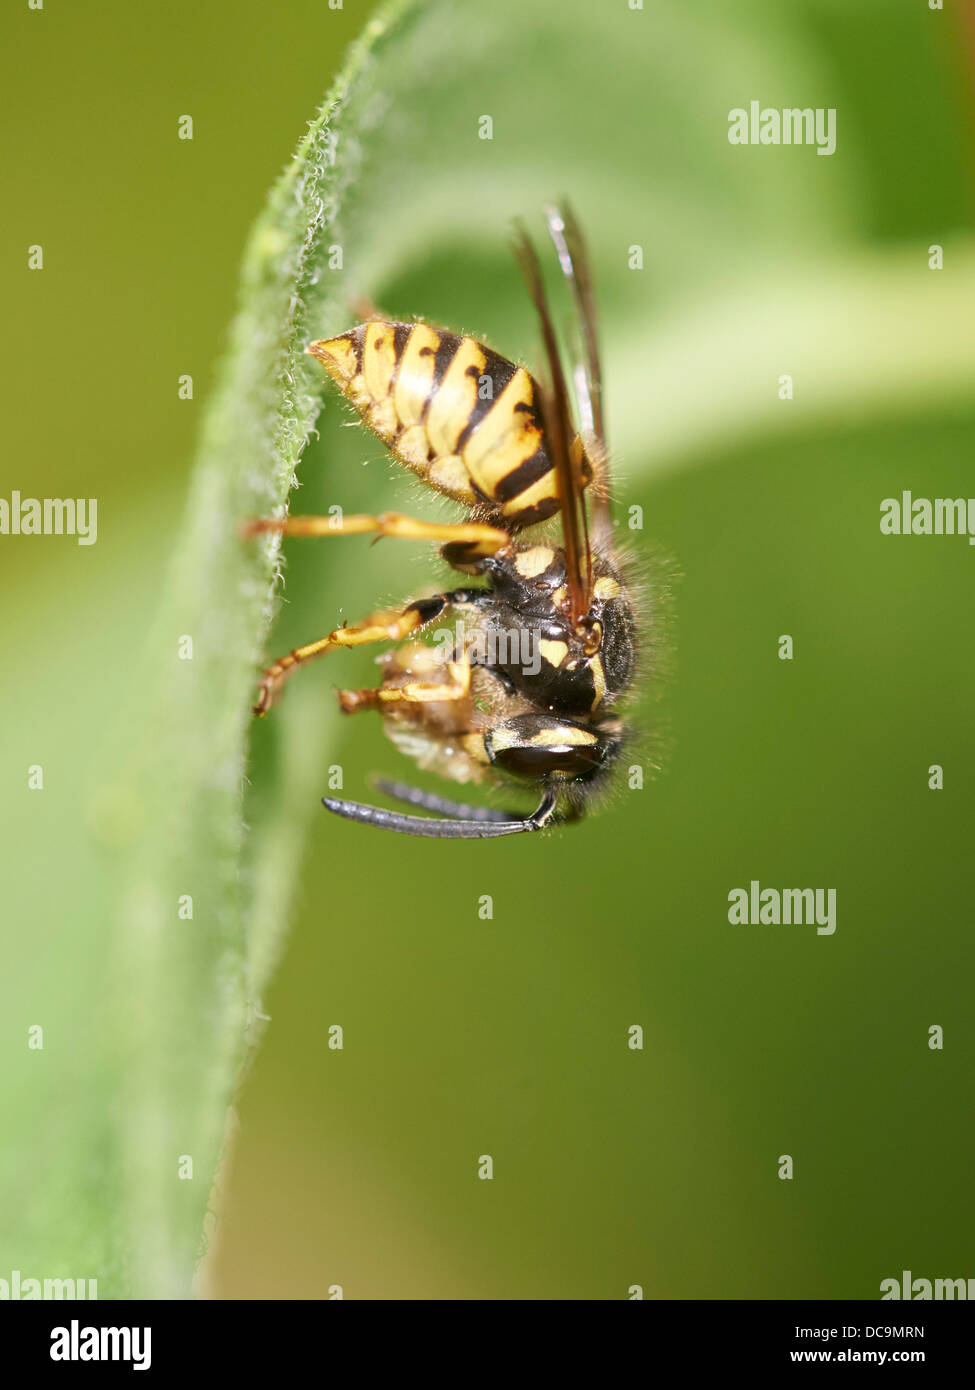 Common Wasp eating prey - Stock Image